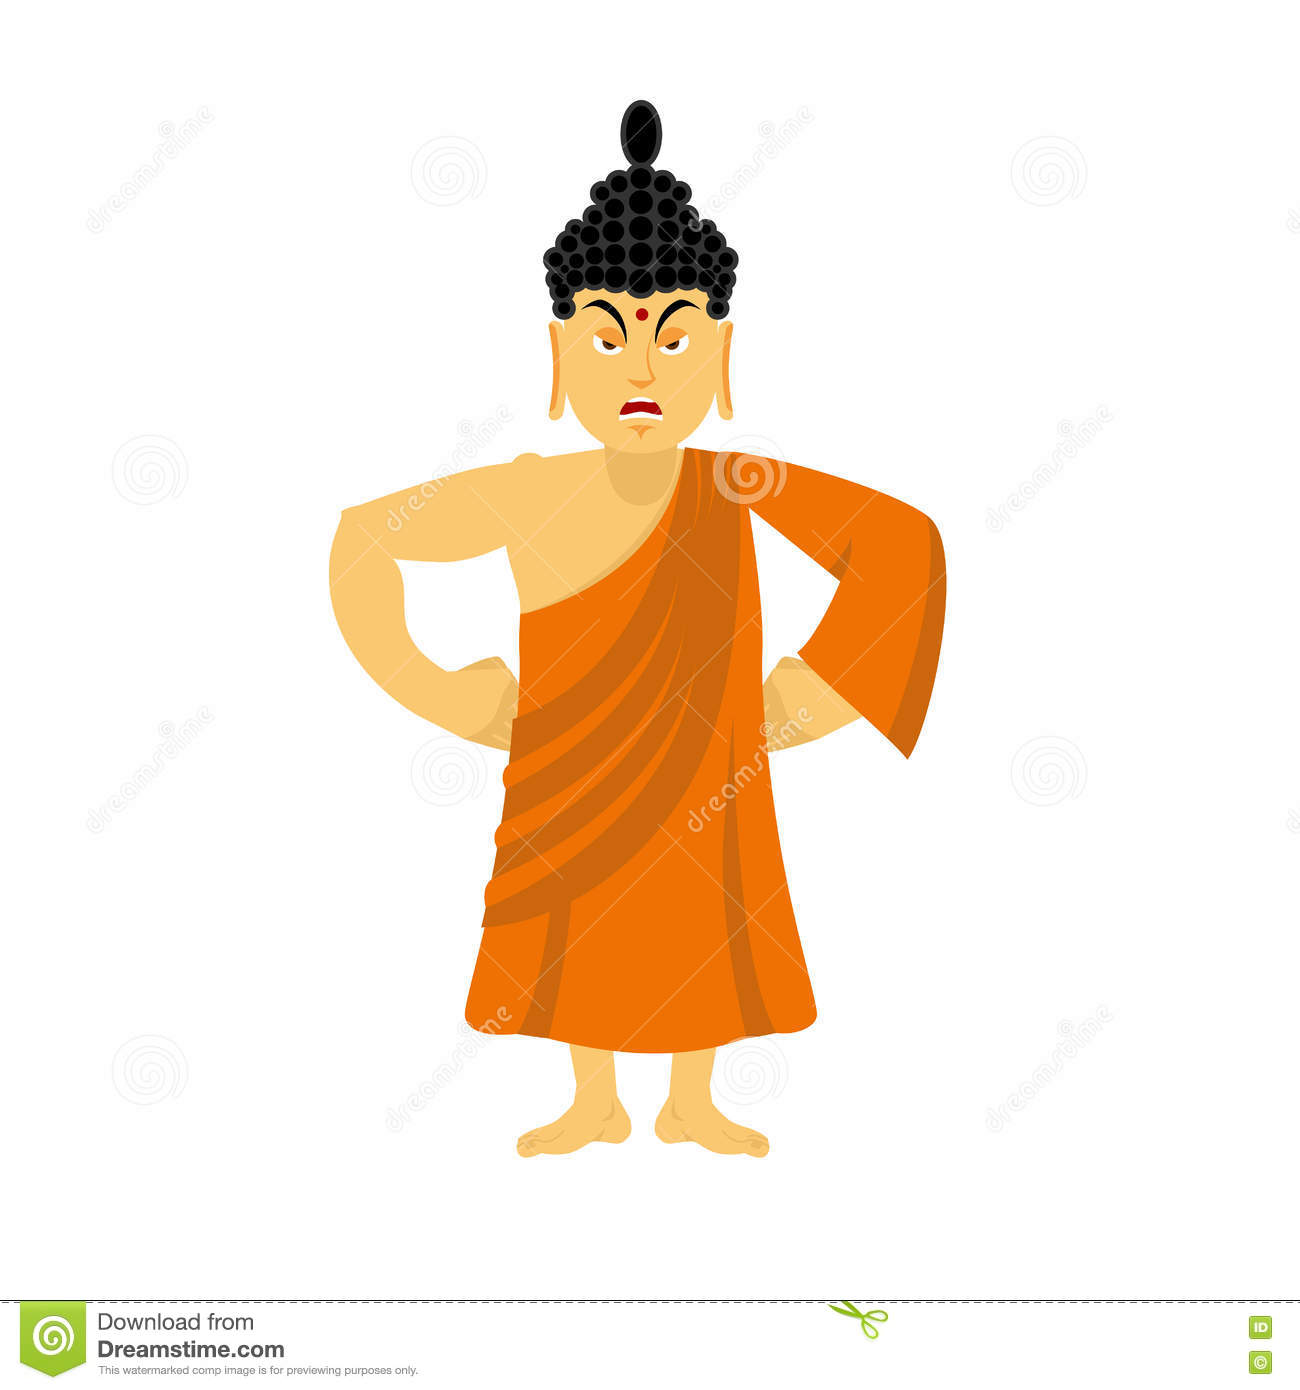 surgoinsville buddhist single men Man and woman must have freedom either to get married or to remain single this does not mean that buddhism  with men in the field of  happy married life: a.